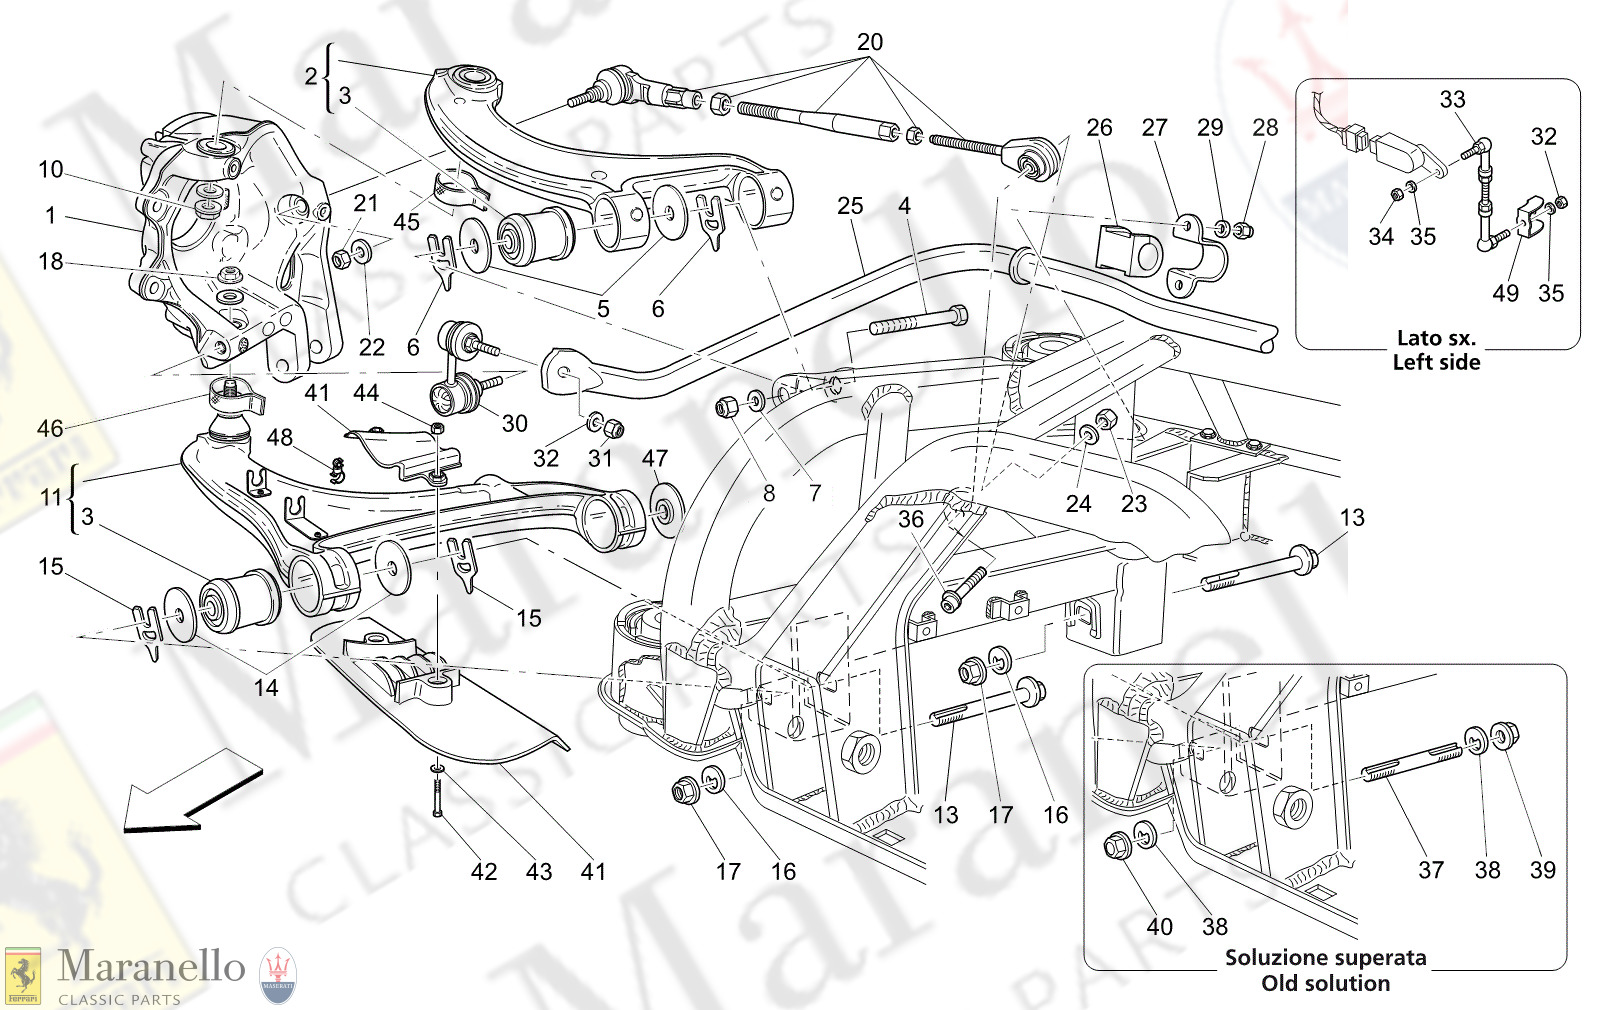 06.20 - 1 - 0620 - 1 Rear Suspension